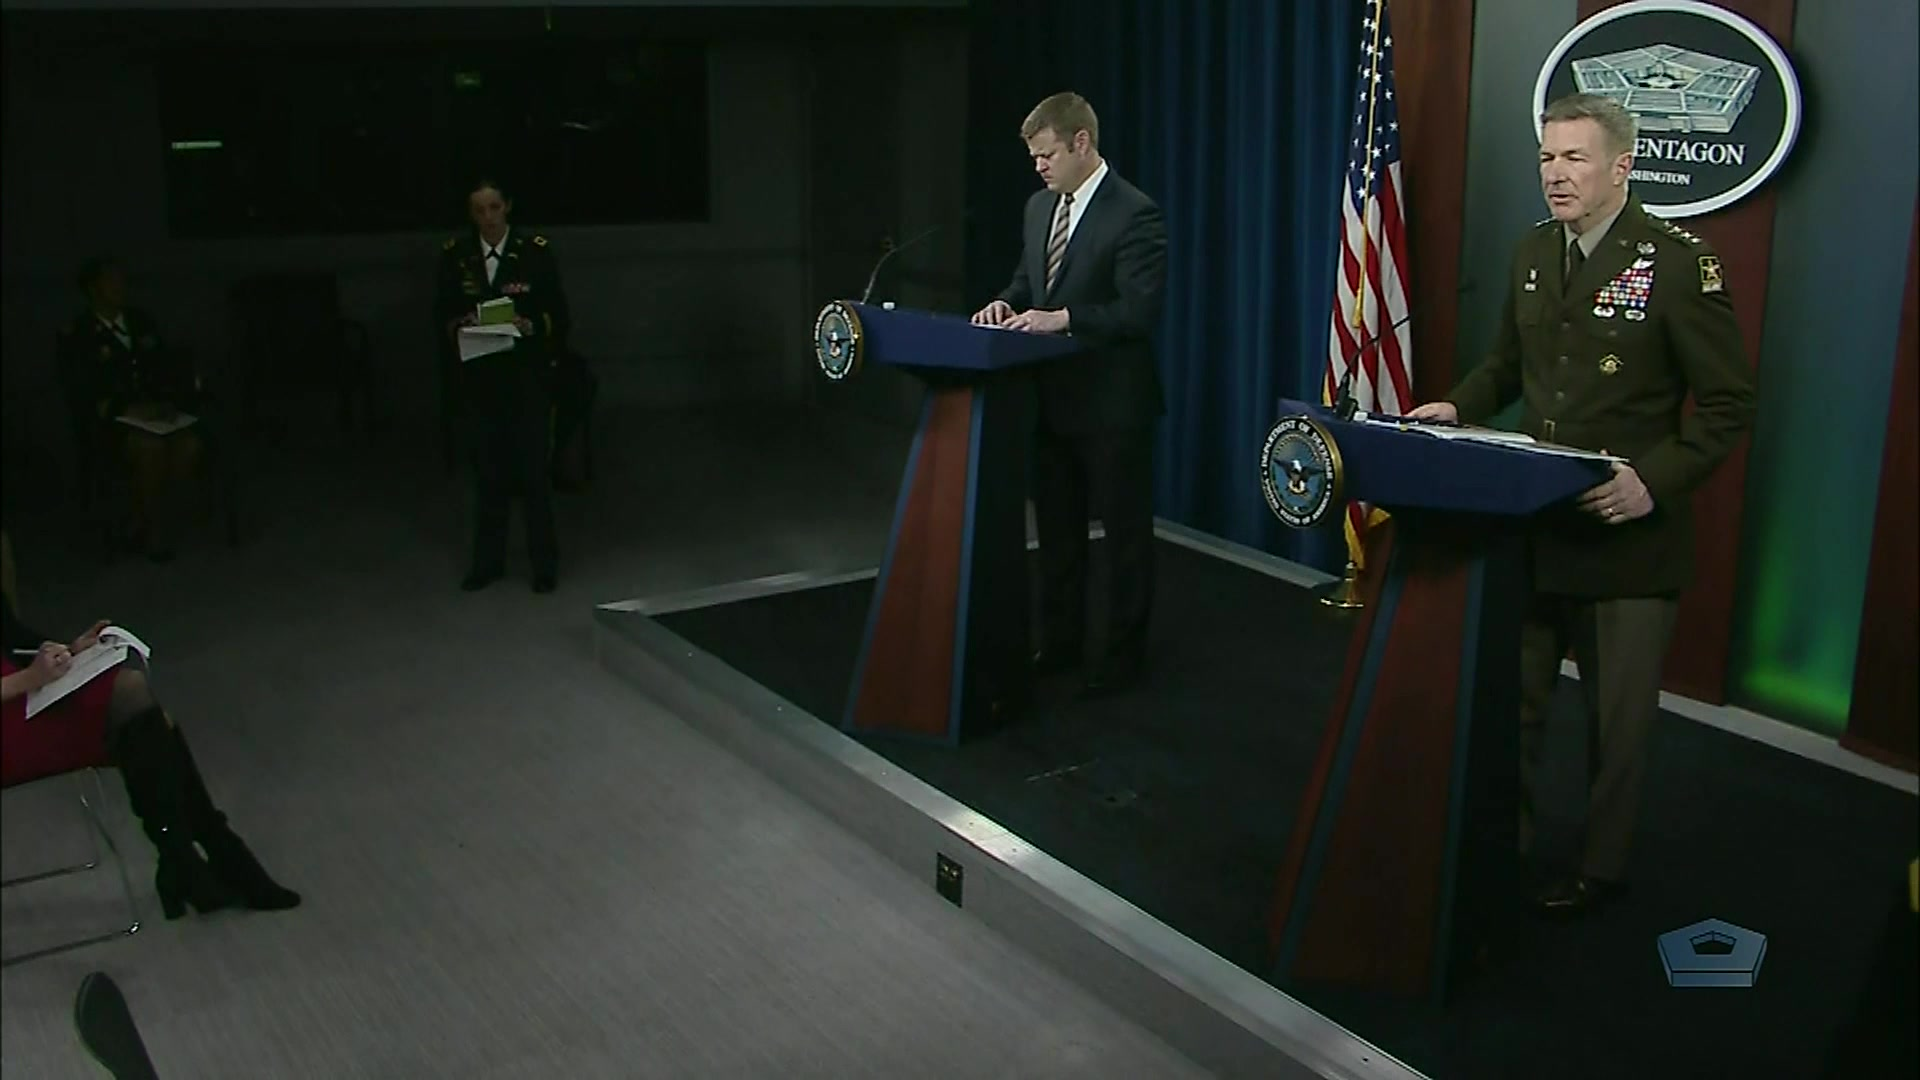 Army Secretary Ryan D. McCarthy; Army Chief of Staff Gen. James C. McConville; and Army Lt. Gen. Daniel R. Hokanson, director of the Army National Guard, brief reporters on the Army's role in the Defense Department's COVID-19 efforts during a Pentagon news conference, March 26, 2020.